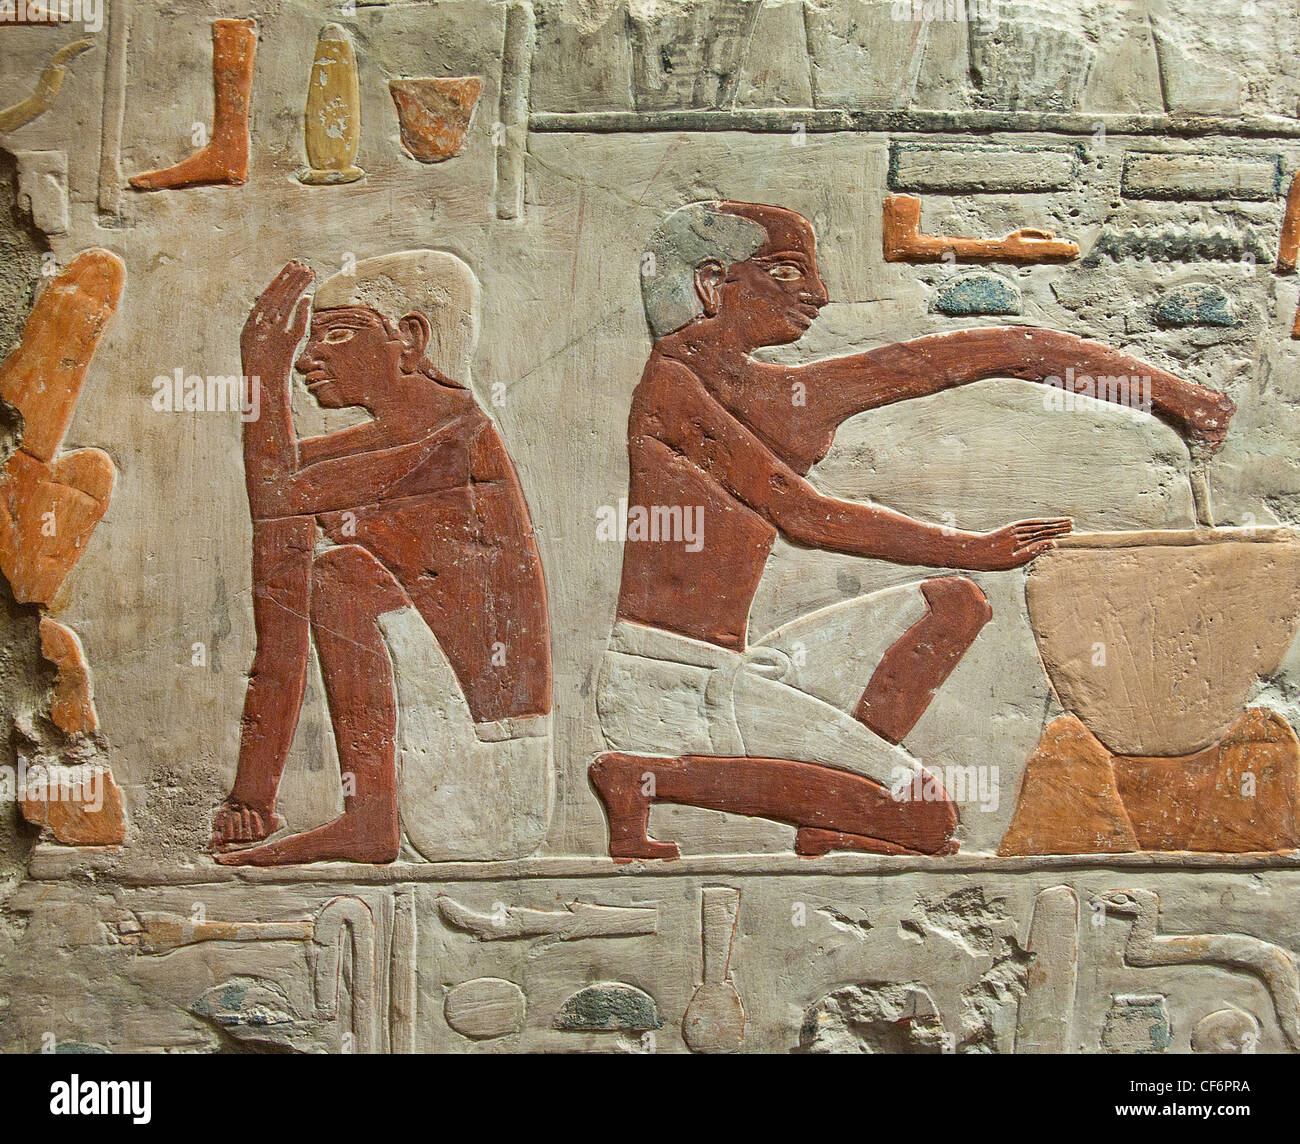 Bakery Manufacturing and baking bread 5 Dynasty 2500-2350 BC Egypt Egyptian hieroglyph - Stock Image